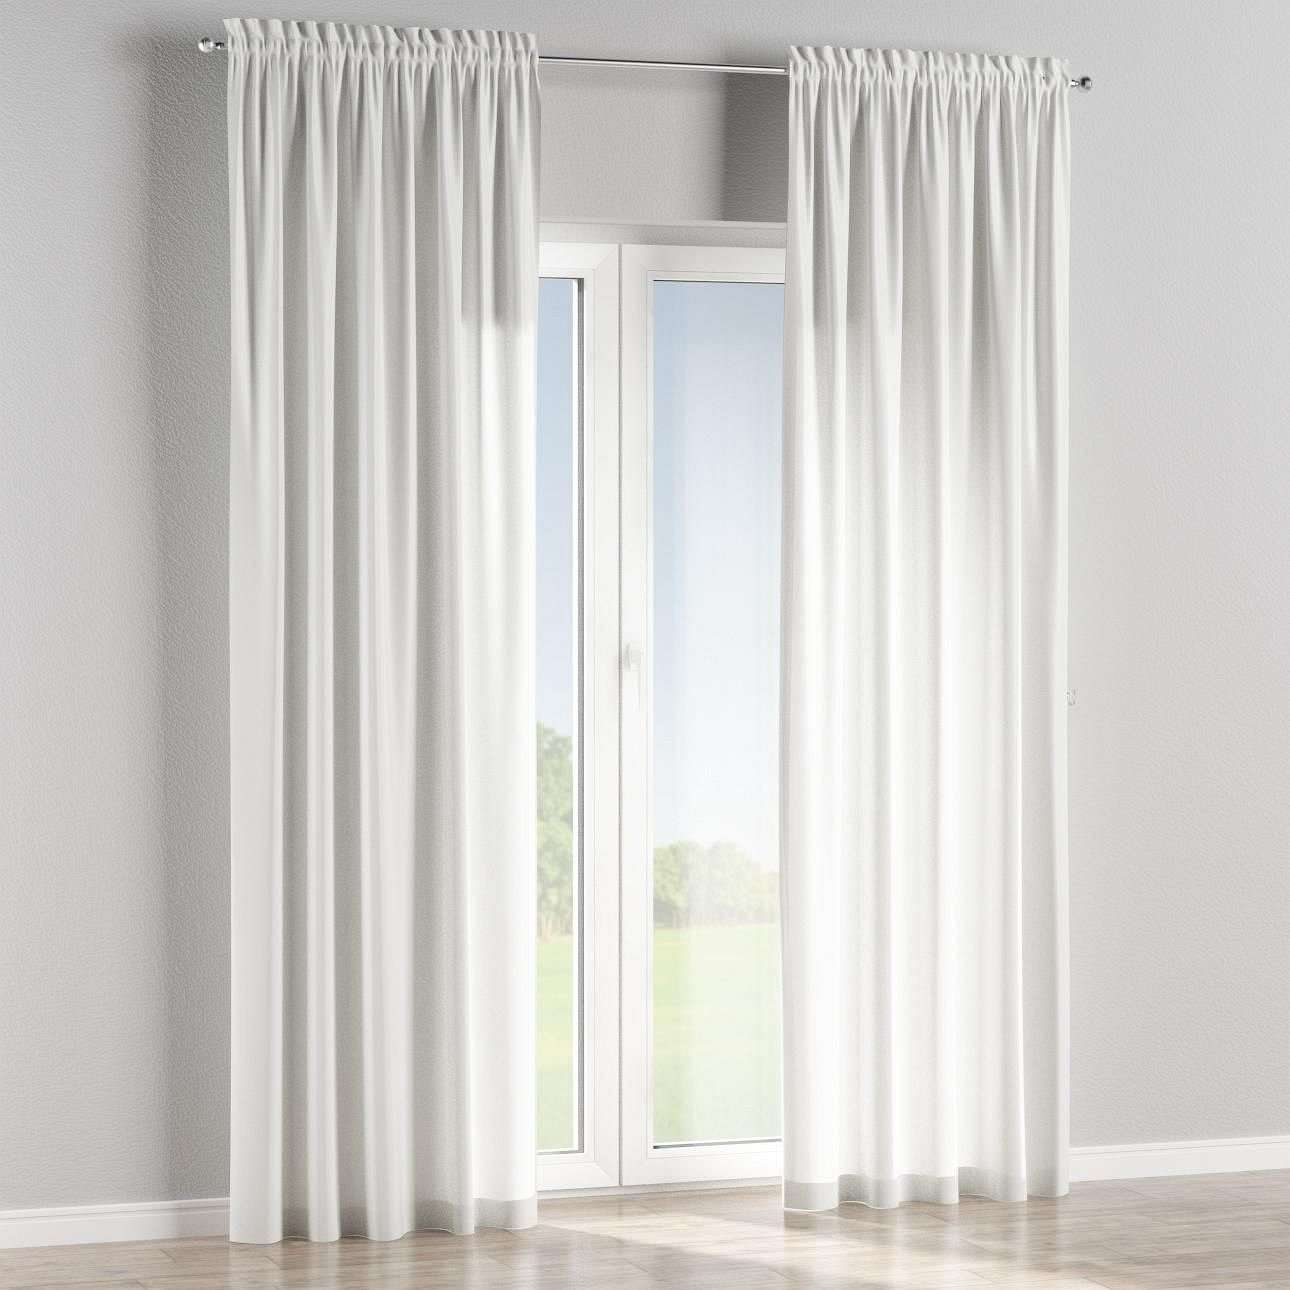 Slot and frill lined curtains in collection Victoria, fabric: 130-05